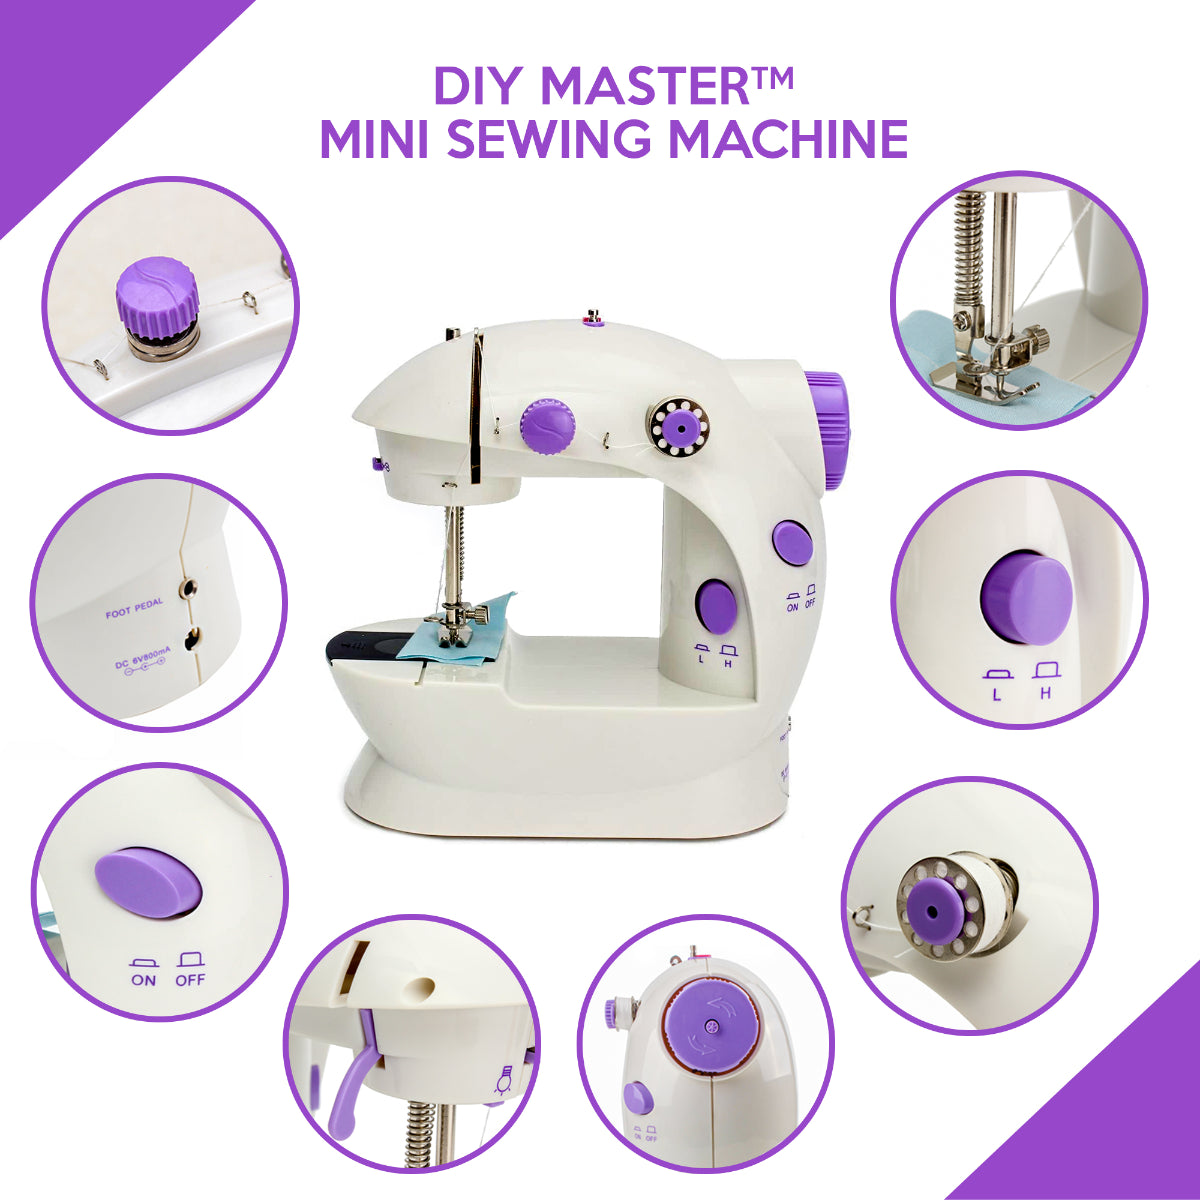 DIYMaster Mini Handheld Portable Sewing Machine for DIY, Beginners, and Kids convenient